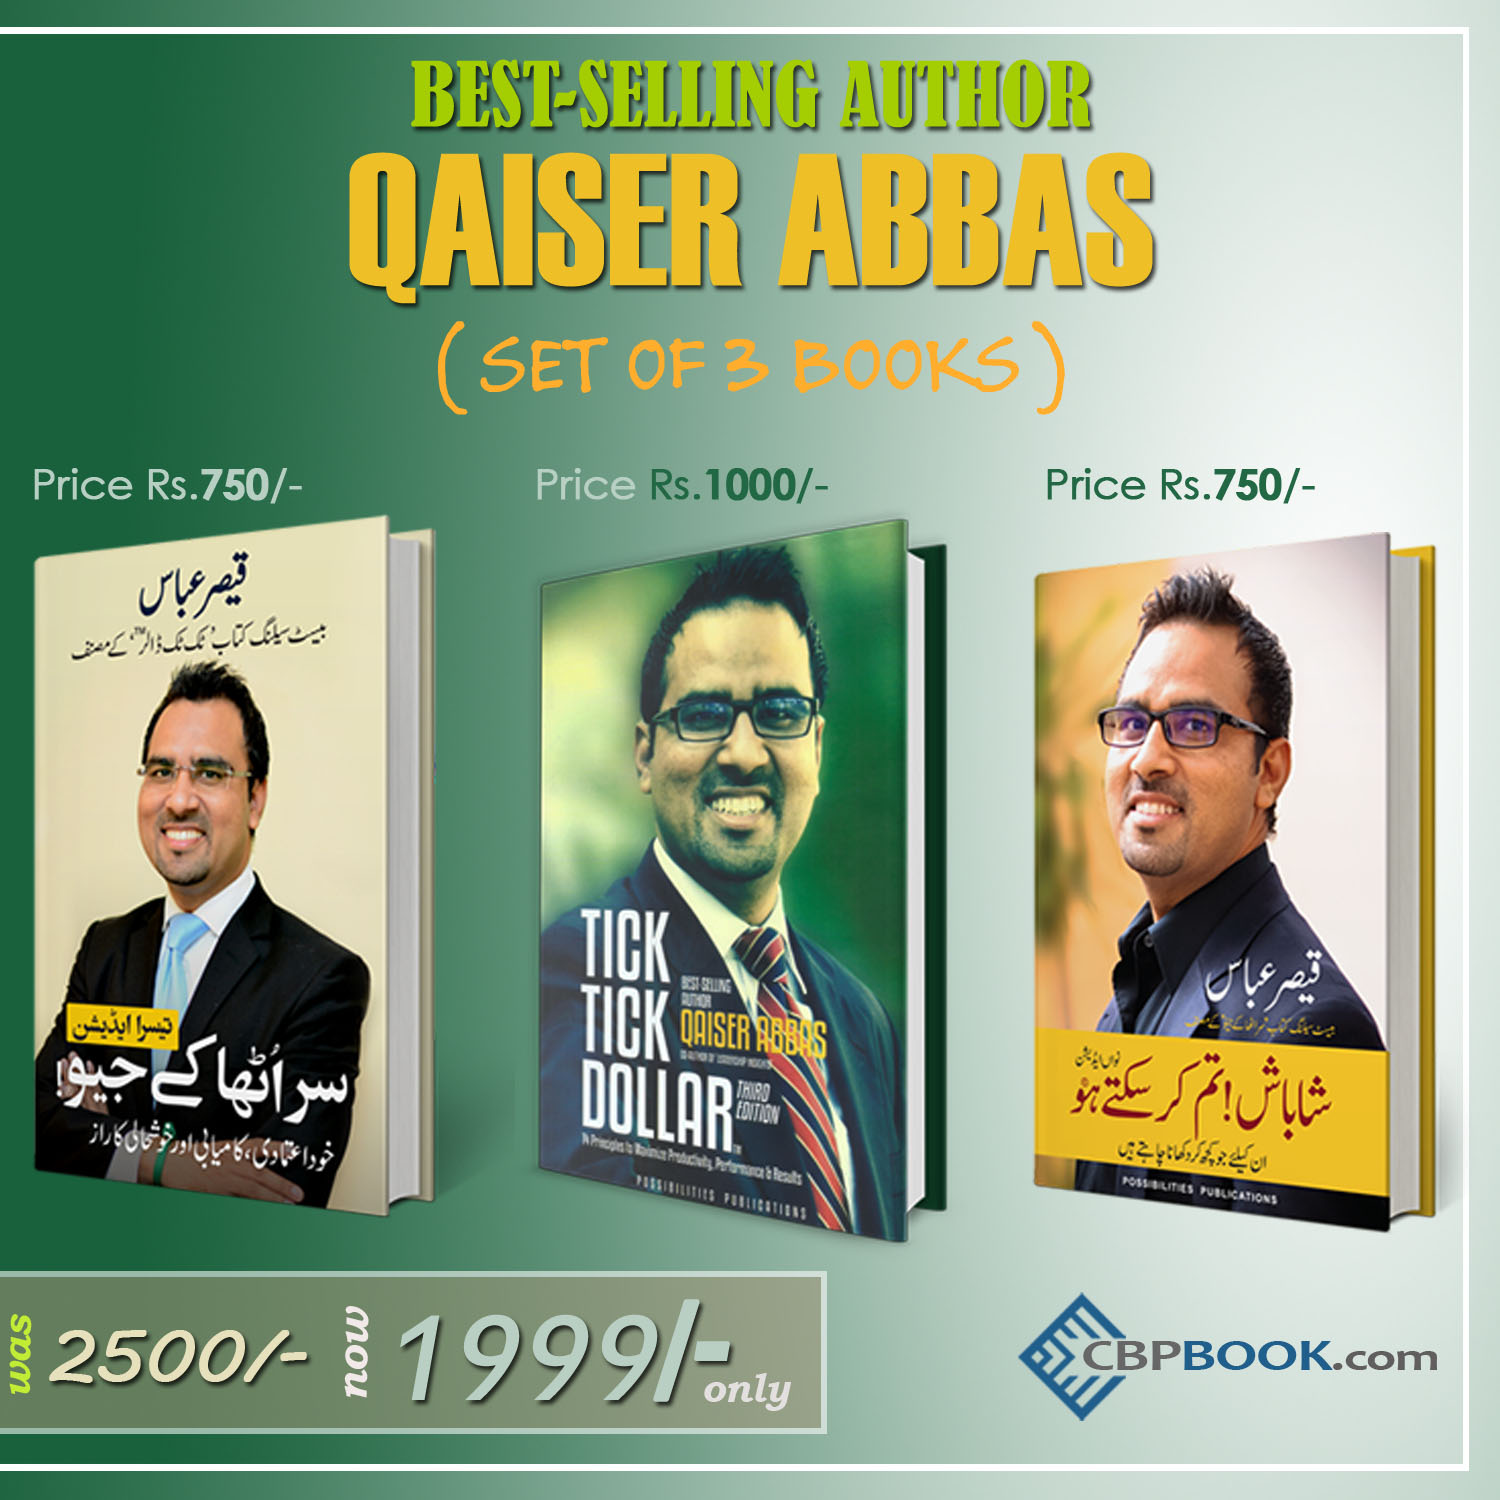 best selling author qaiser abbas set of 3 books